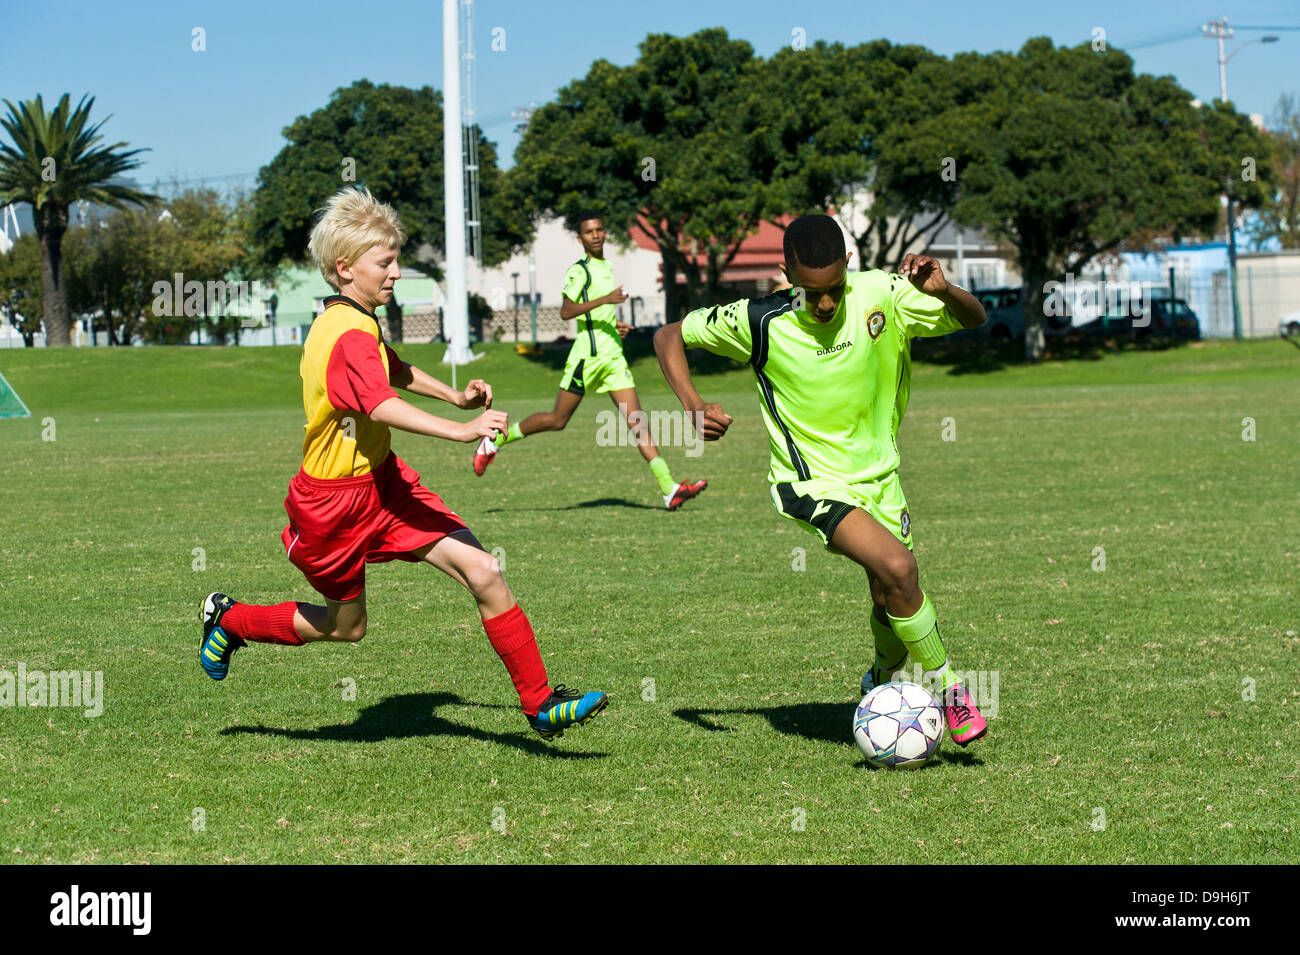 U15 Junior football teams playing a league match, Cape Town, South Africa - Stock Image